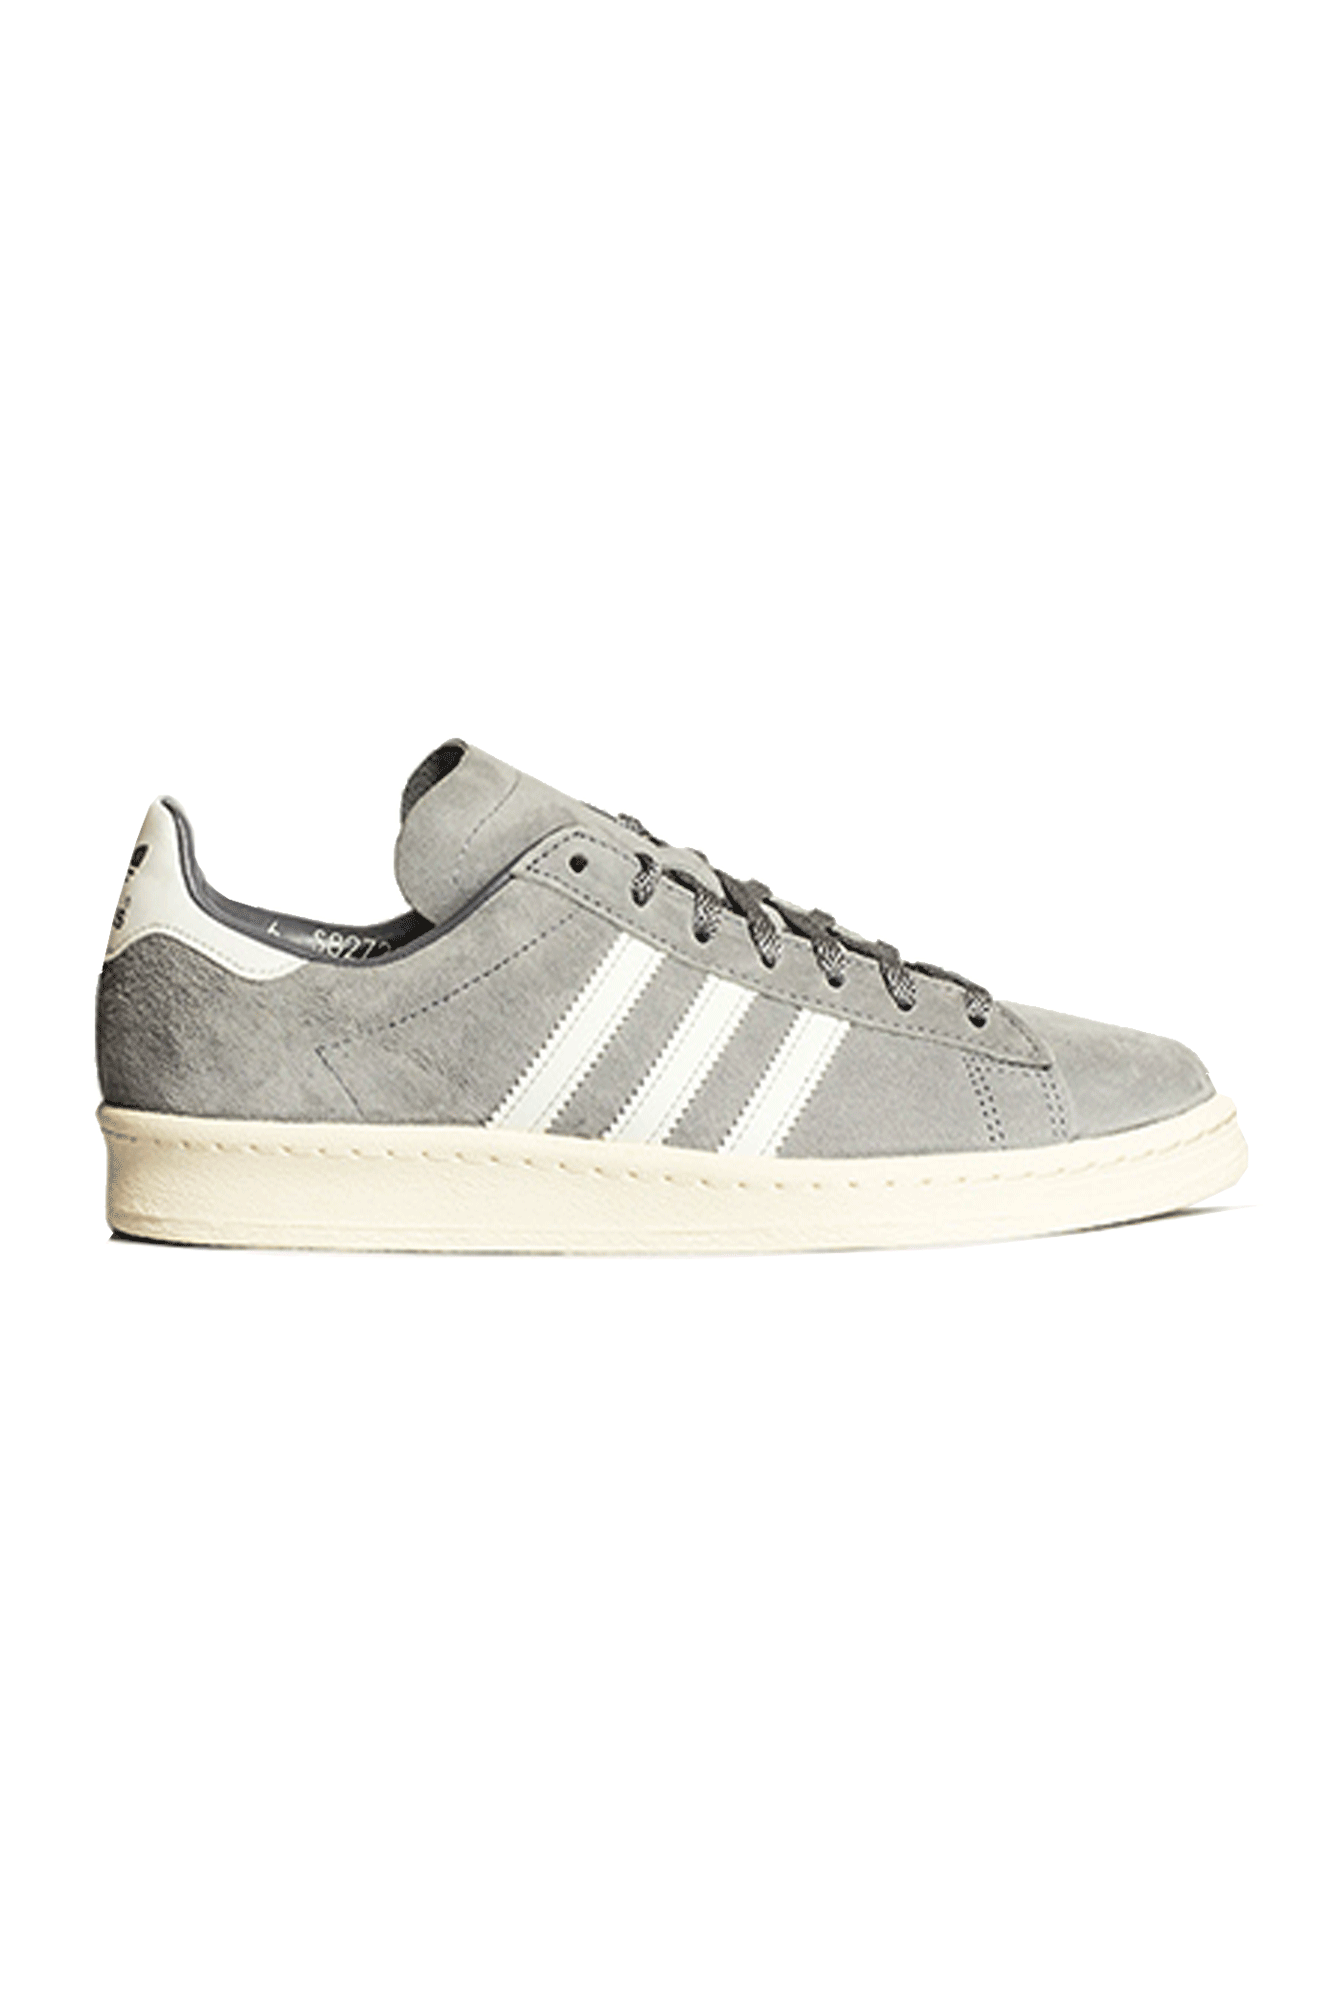 Adidas Originals Sneakers Campus 80s Japan Pack Vntg Grey S82739#000#C0009#5 - One Block Down